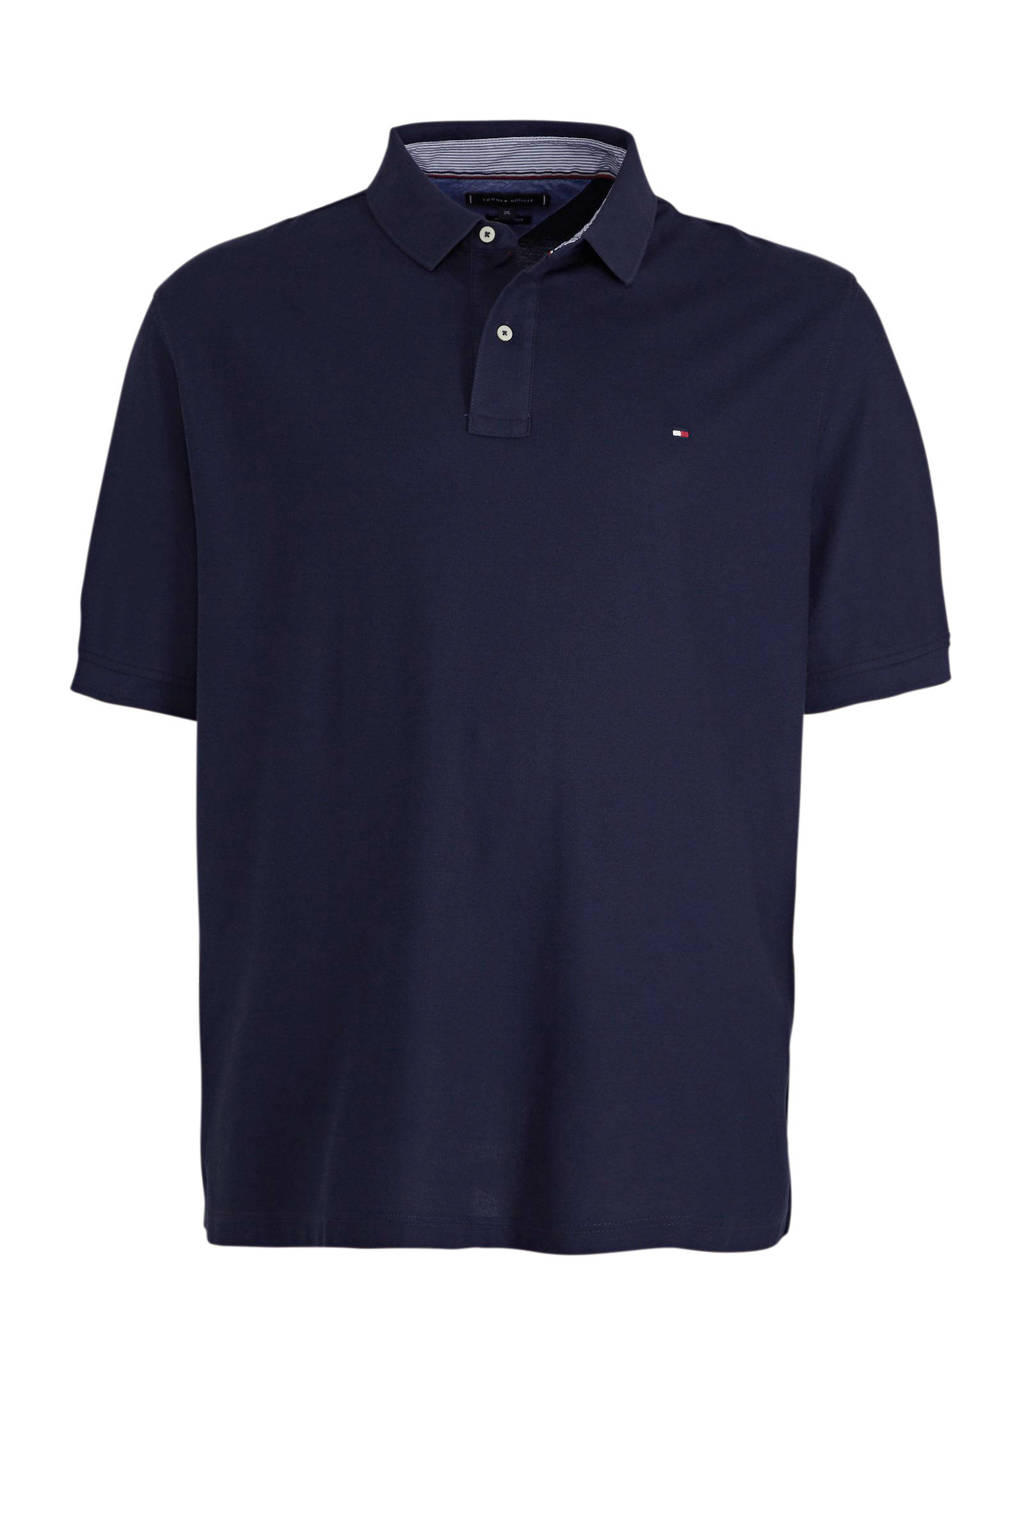 Tommy Hilfiger Big & Tall +size regular fit polo donkerblauw, Donkerblauw